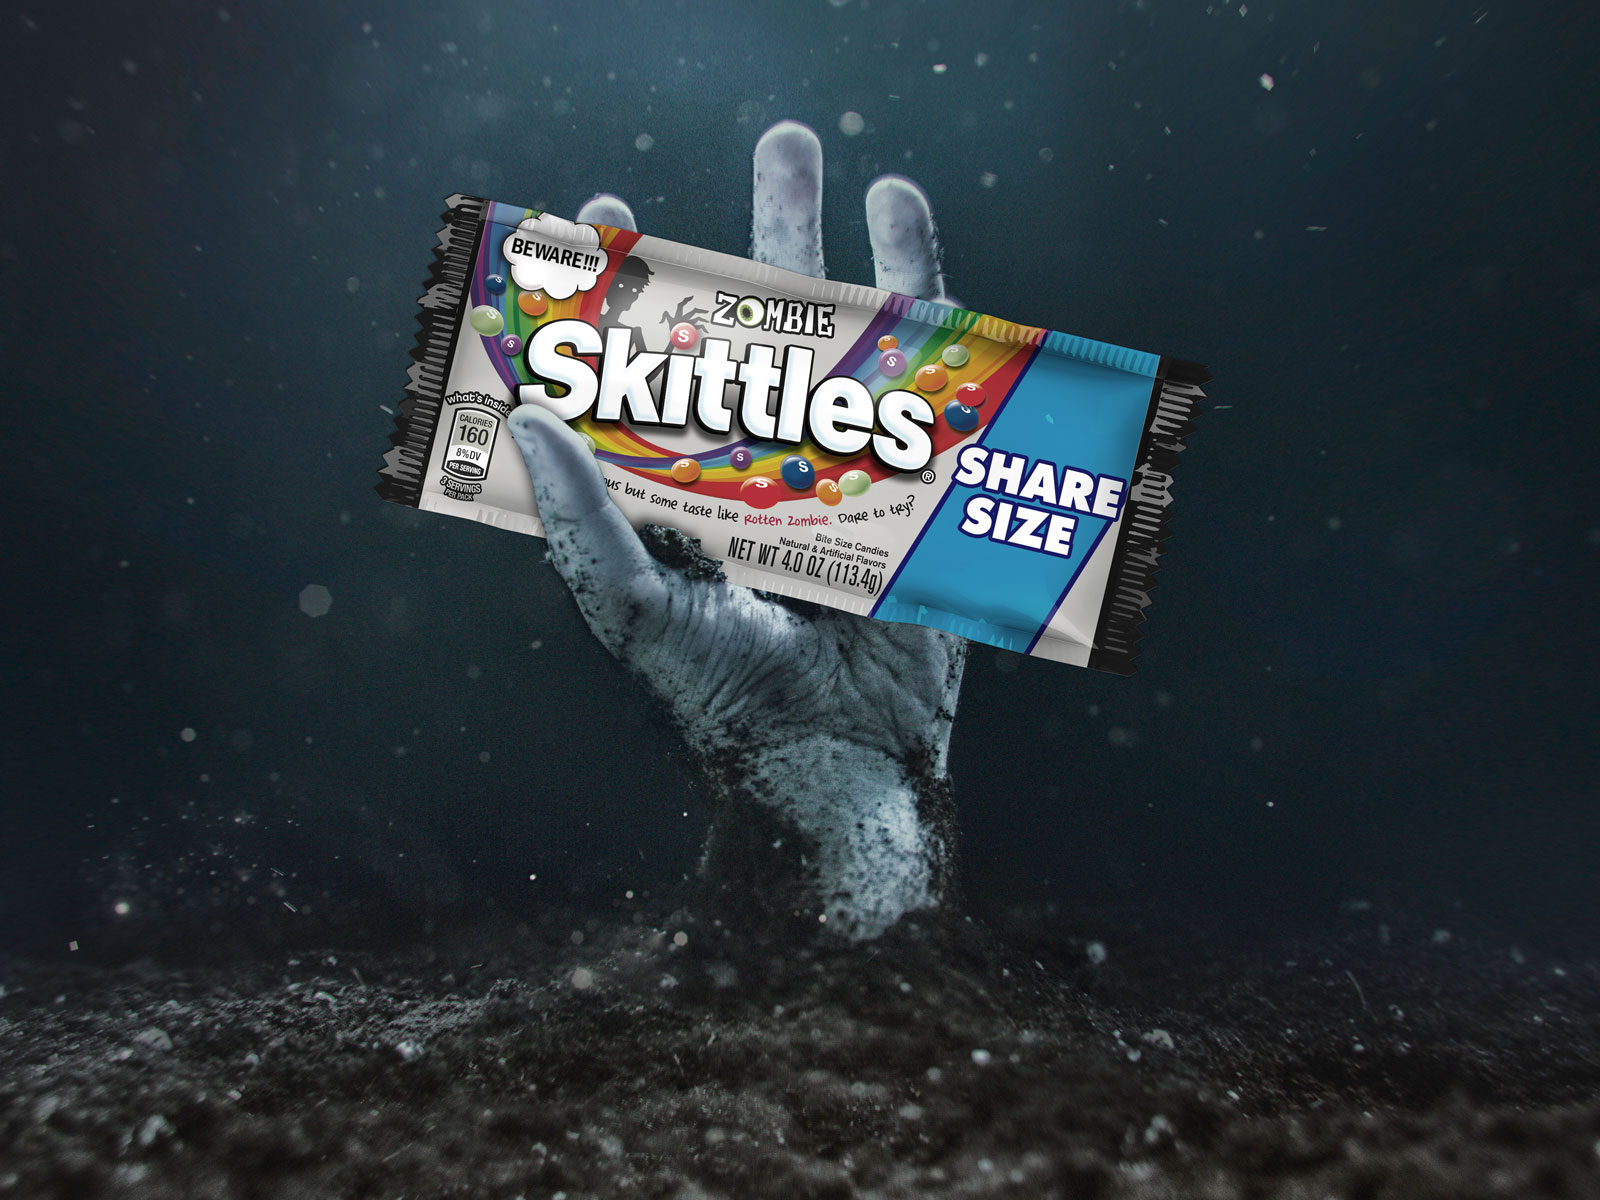 The Rise of the Zombie Skittles Has Been Foretold